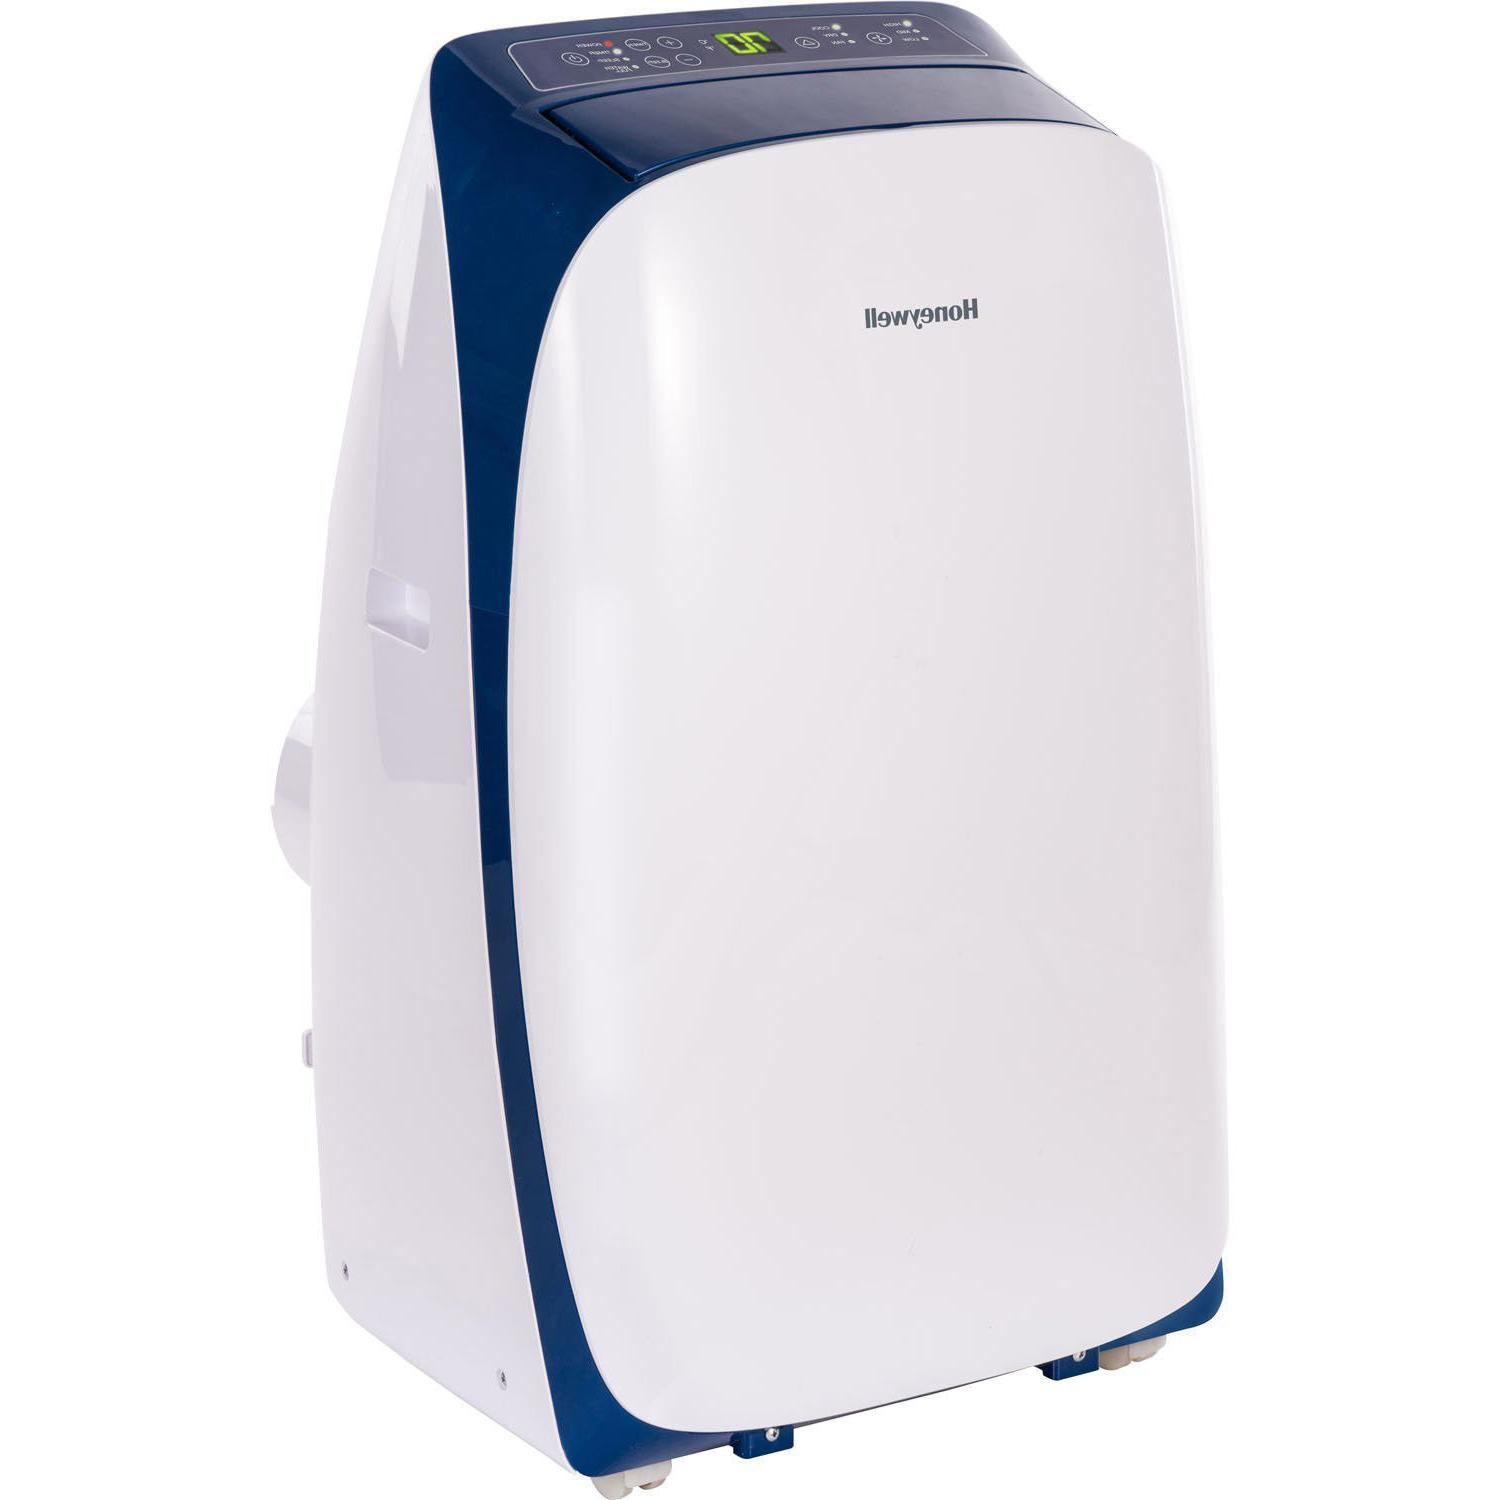 New Honeywell - 12,000 BTU Portable Air Conditioner NEW in O